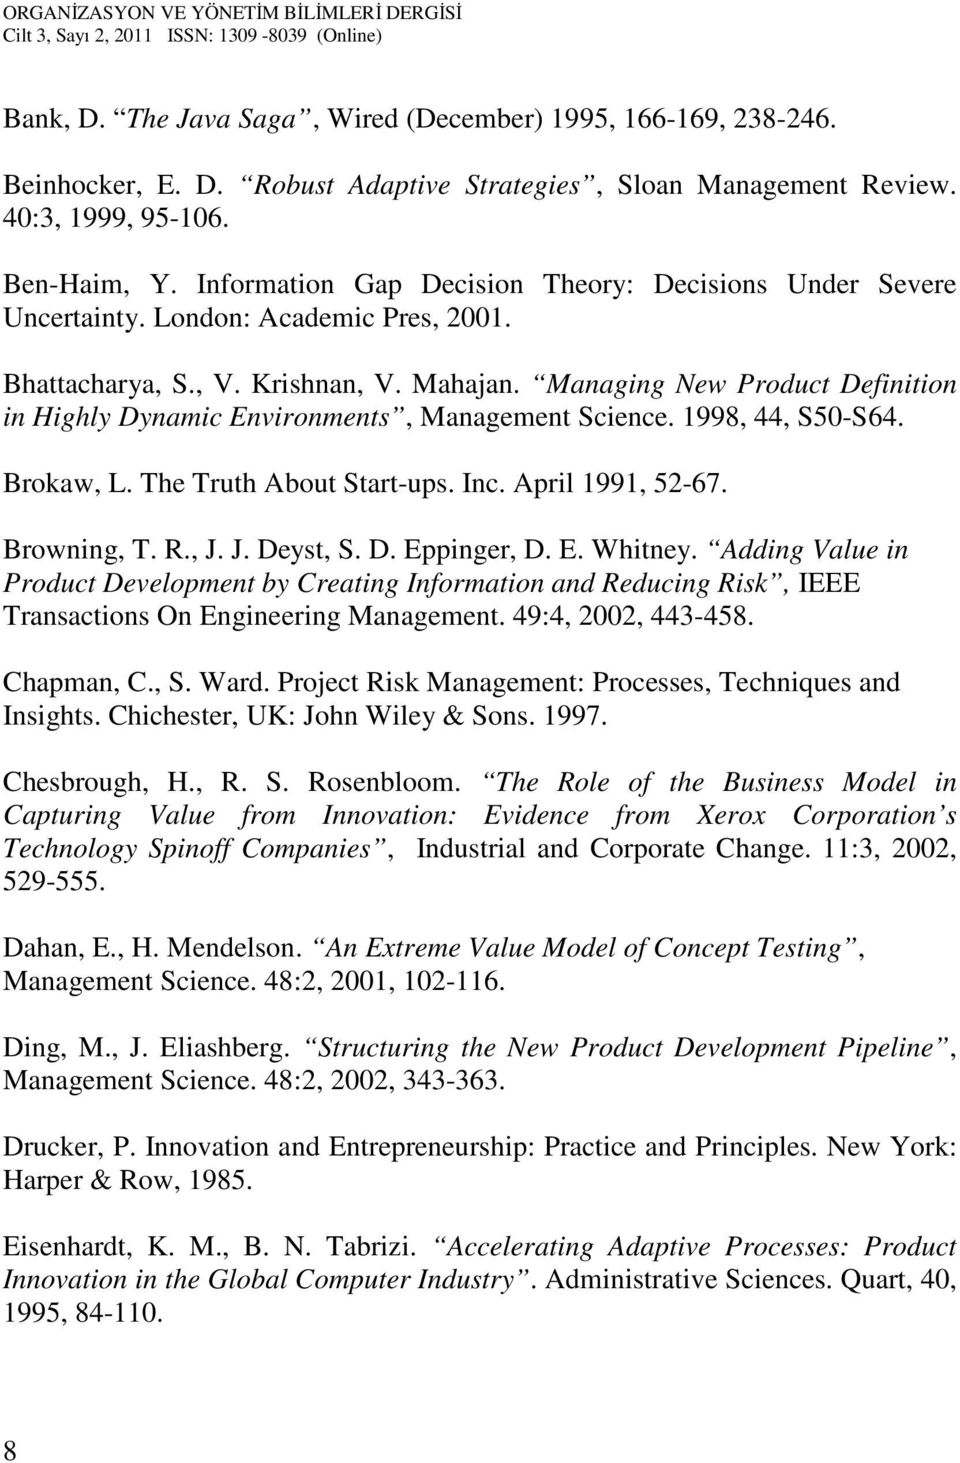 Managing New Product Definition in Highly Dynamic Environments, Management Science. 1998, 44, S50-S64. Brokaw, L. The Truth About Start-ups. Inc. April 1991, 52-67. Browning, T. R., J. J. Deyst, S. D. Eppinger, D.